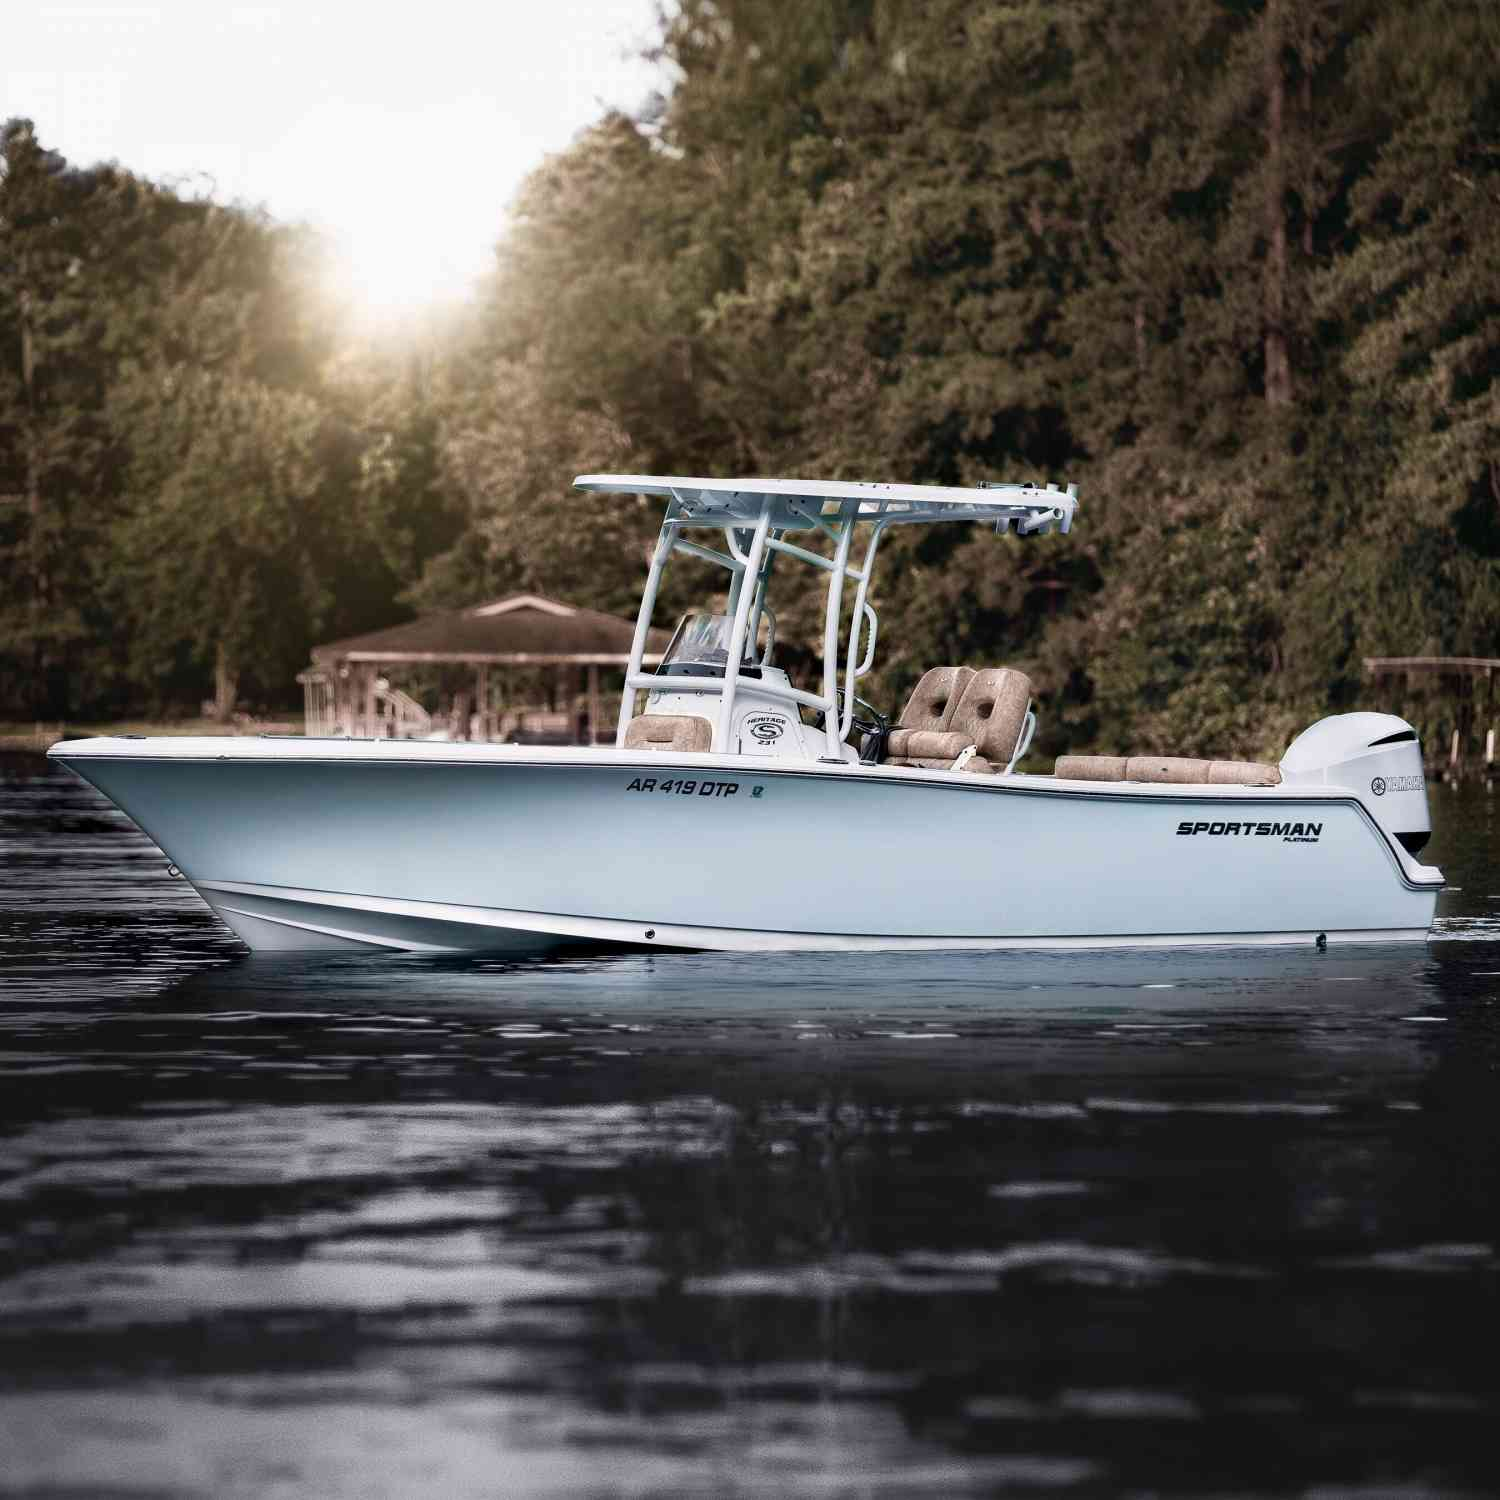 Title: Ice blue - On board their Sportsman Heritage 231 Center Console - Location: Lake Hamilton , Arkansas. Participating in the Photo Contest #SportsmanAugust2020